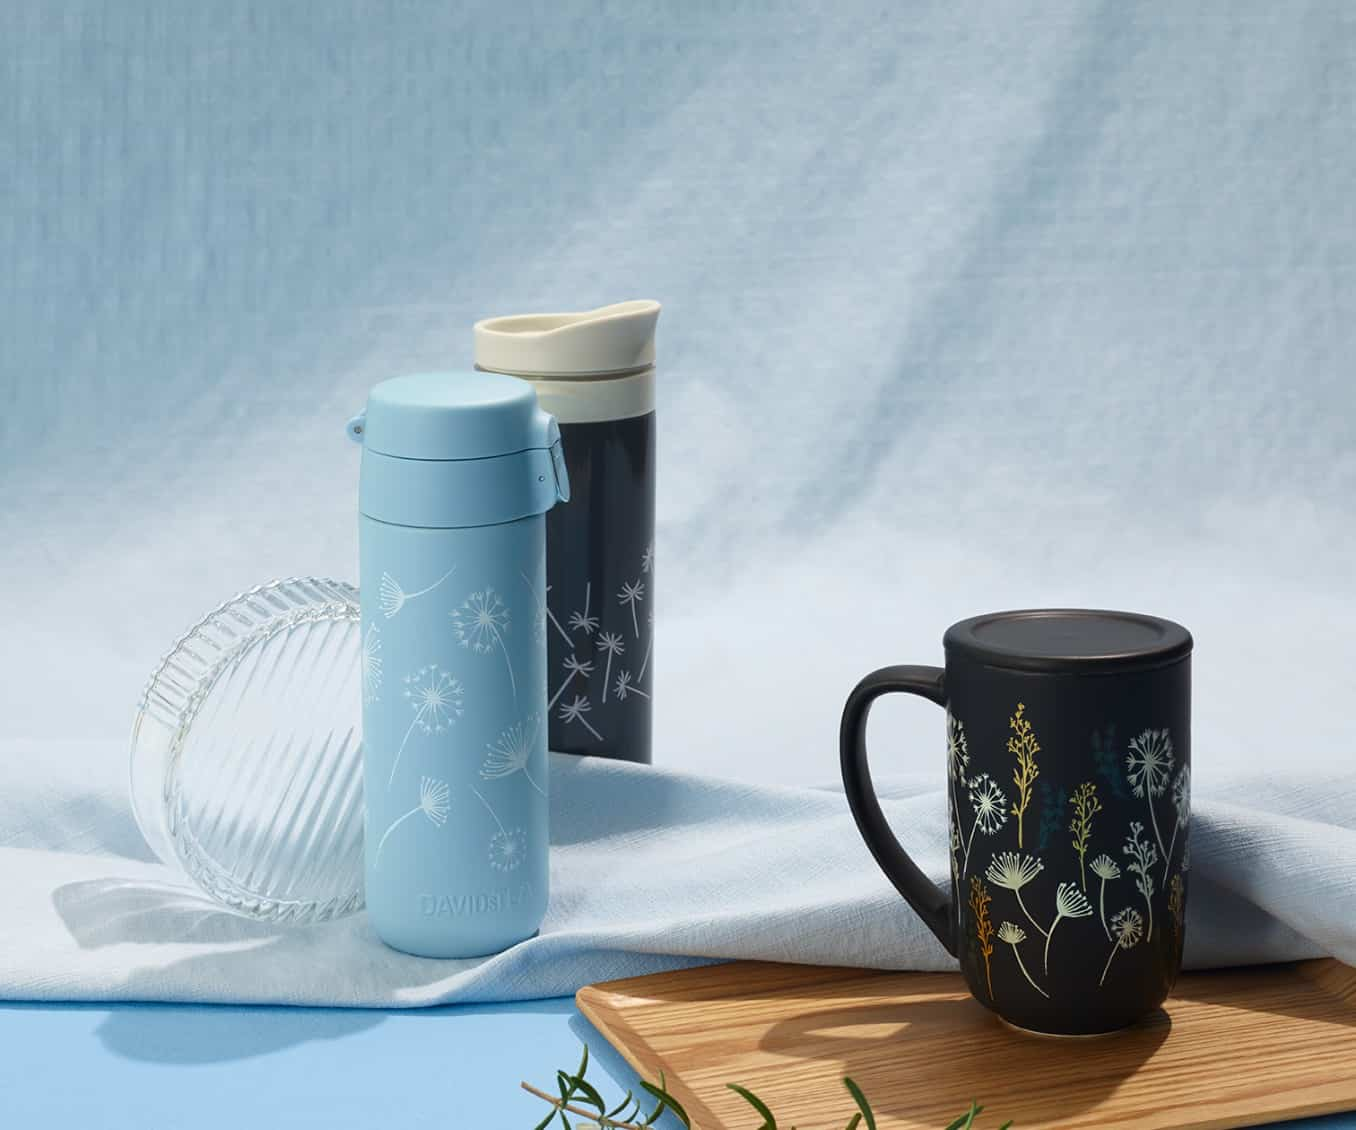 Dandelion Black Colour Changing Nordic Mug and Dandelion Lock Top Travel Mug placed on a sky-blue background.